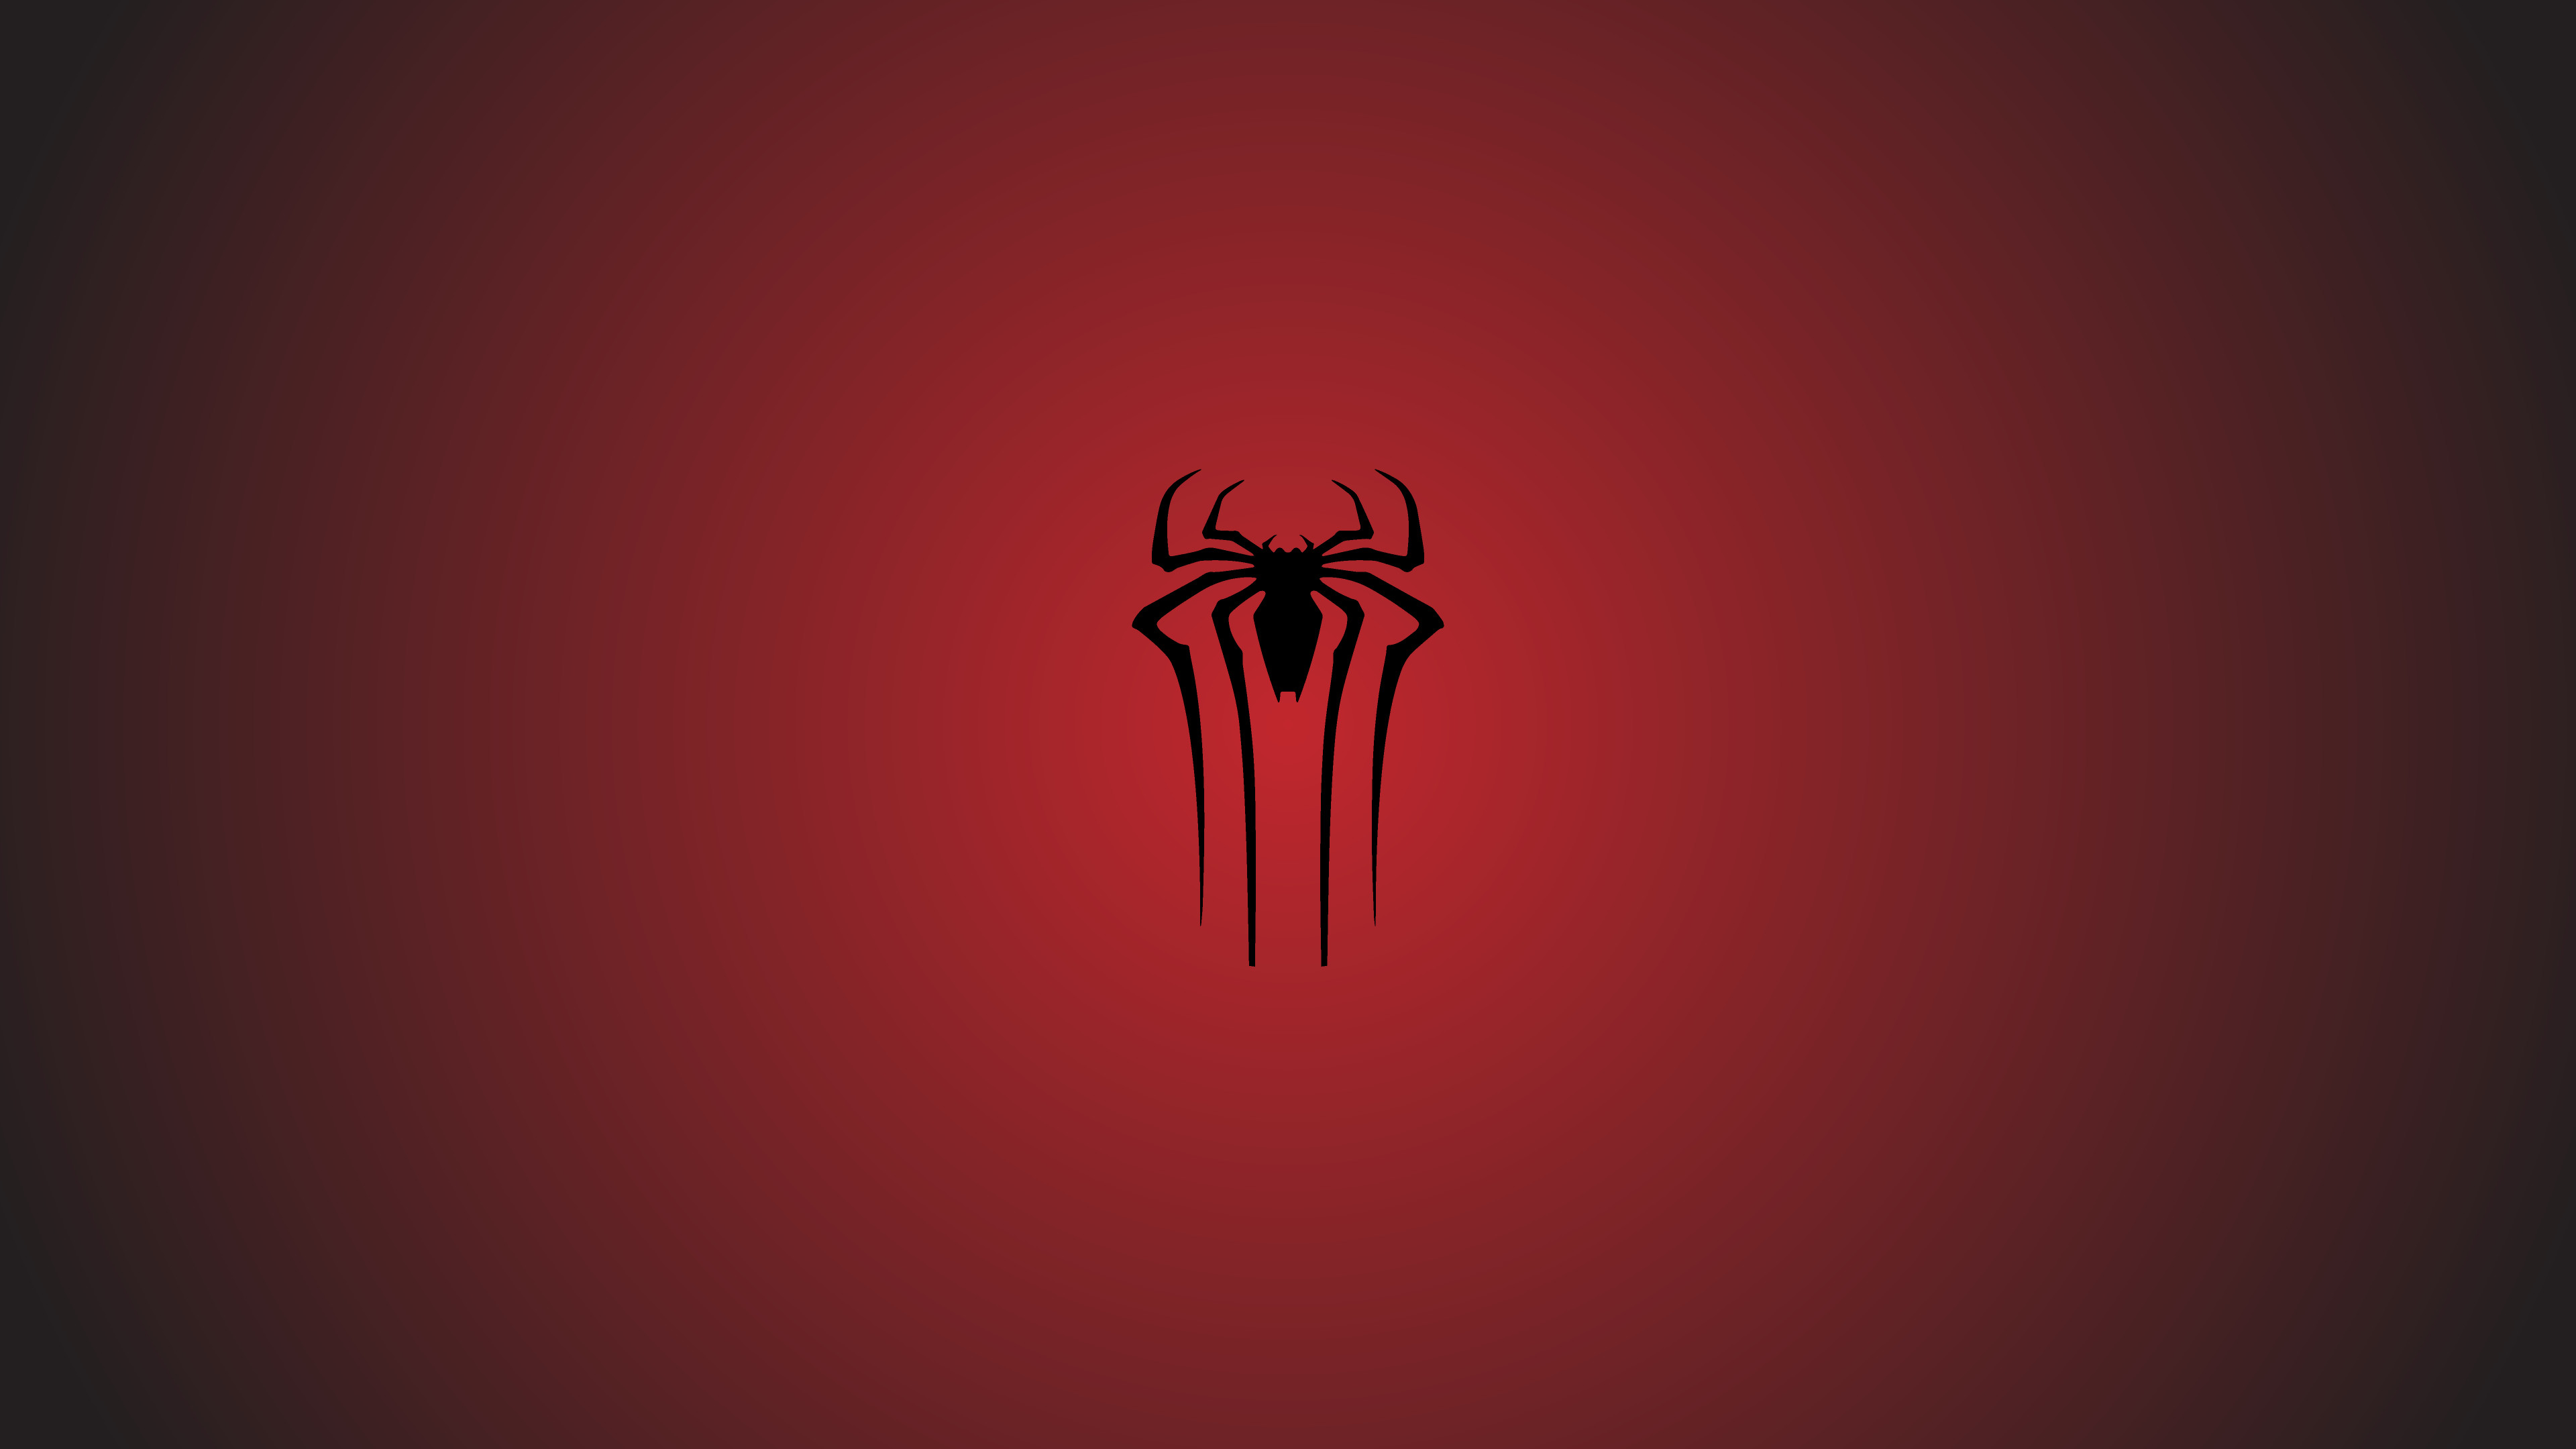 3d Wallpaper Apk Download Minimal Spiderman Wallpapers 71 Images